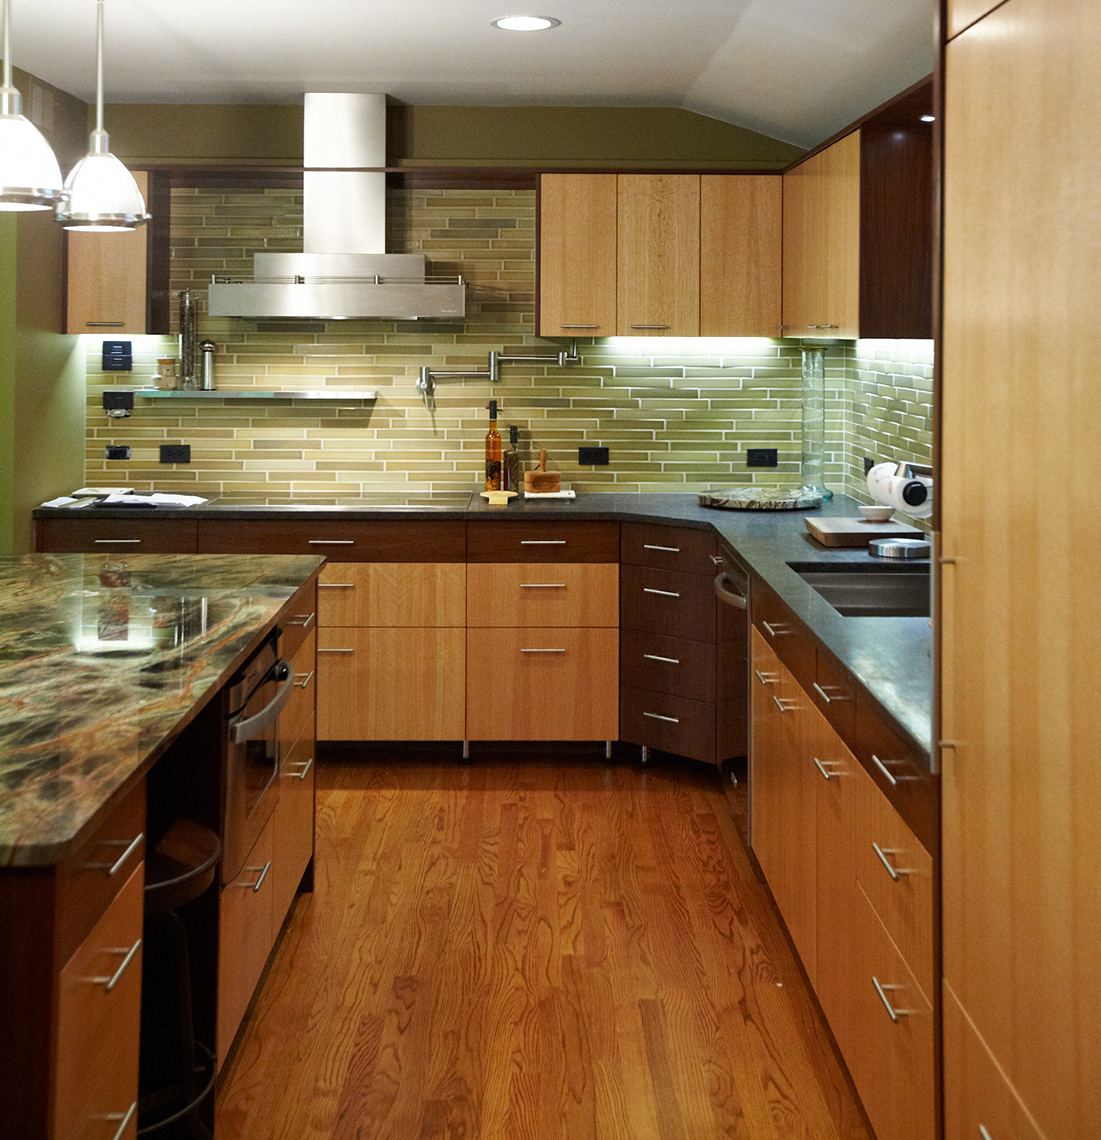 Kitchen-Contemporary-Rift-Grain-Oak-and-Walnut-Custom-Cabinets-2